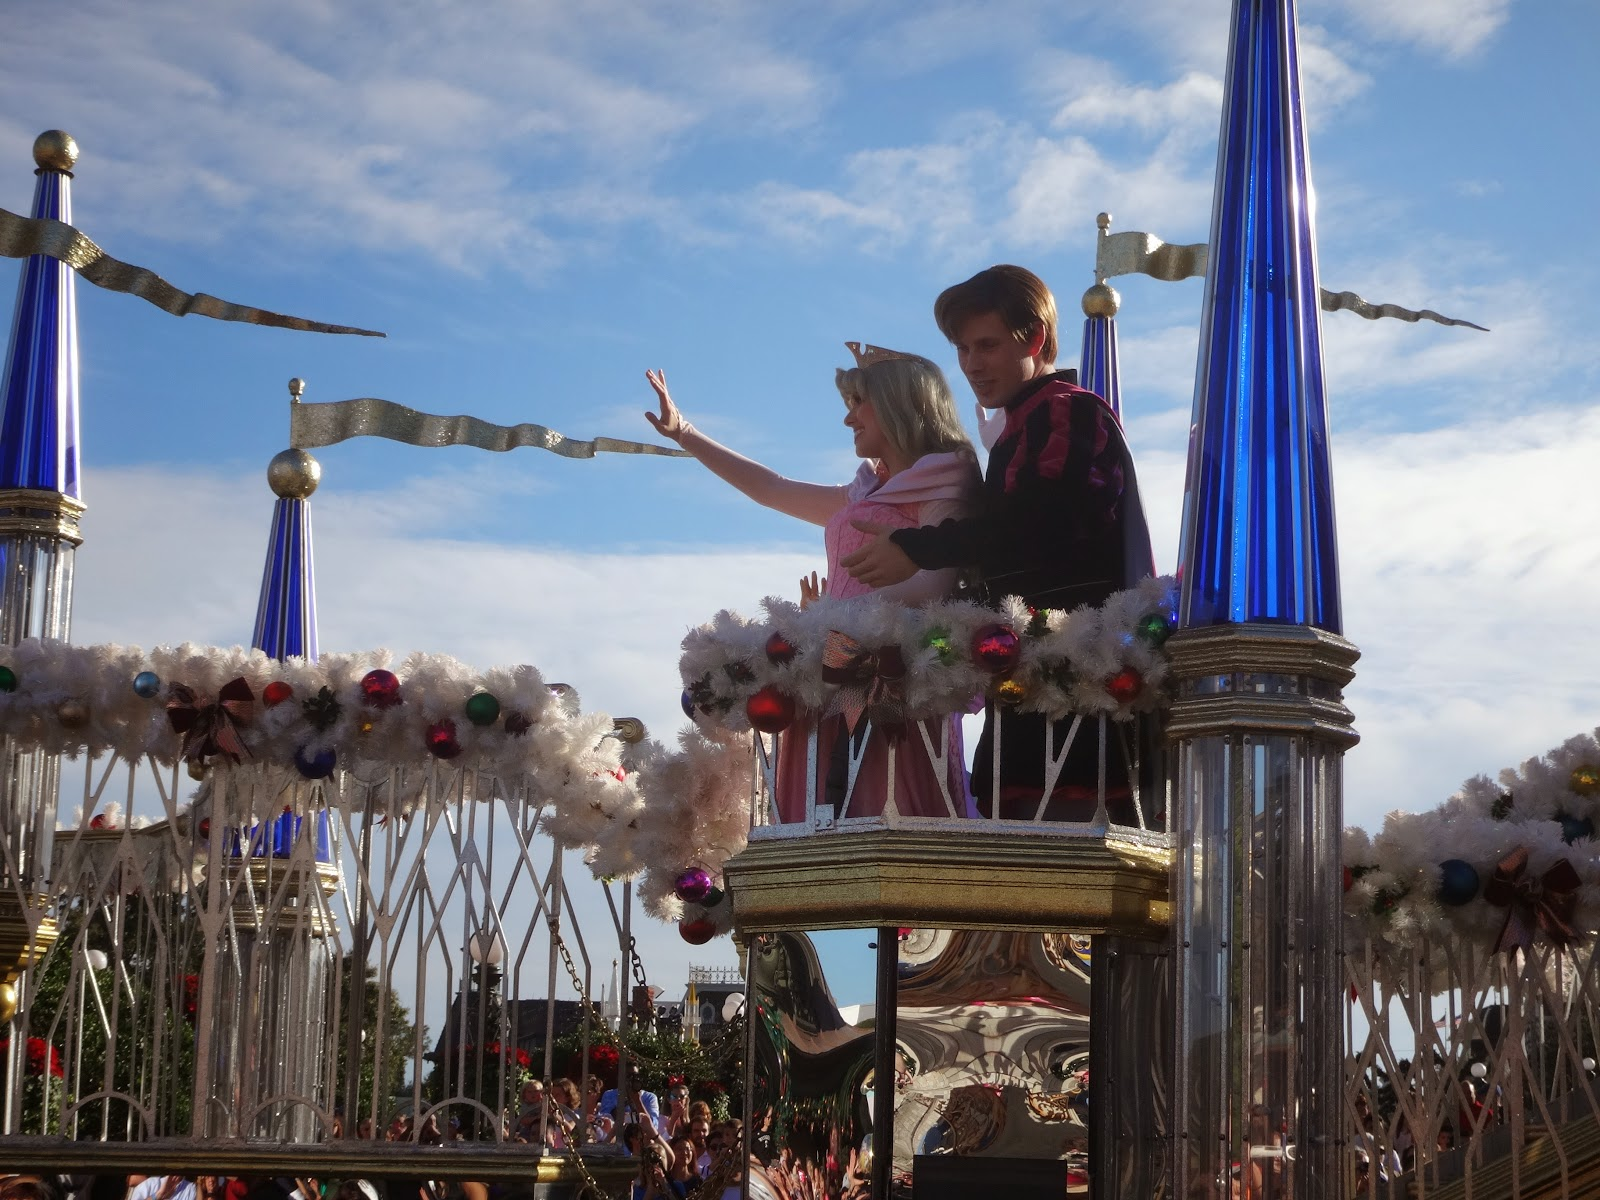 parada - magic kingdom - orlando, eua